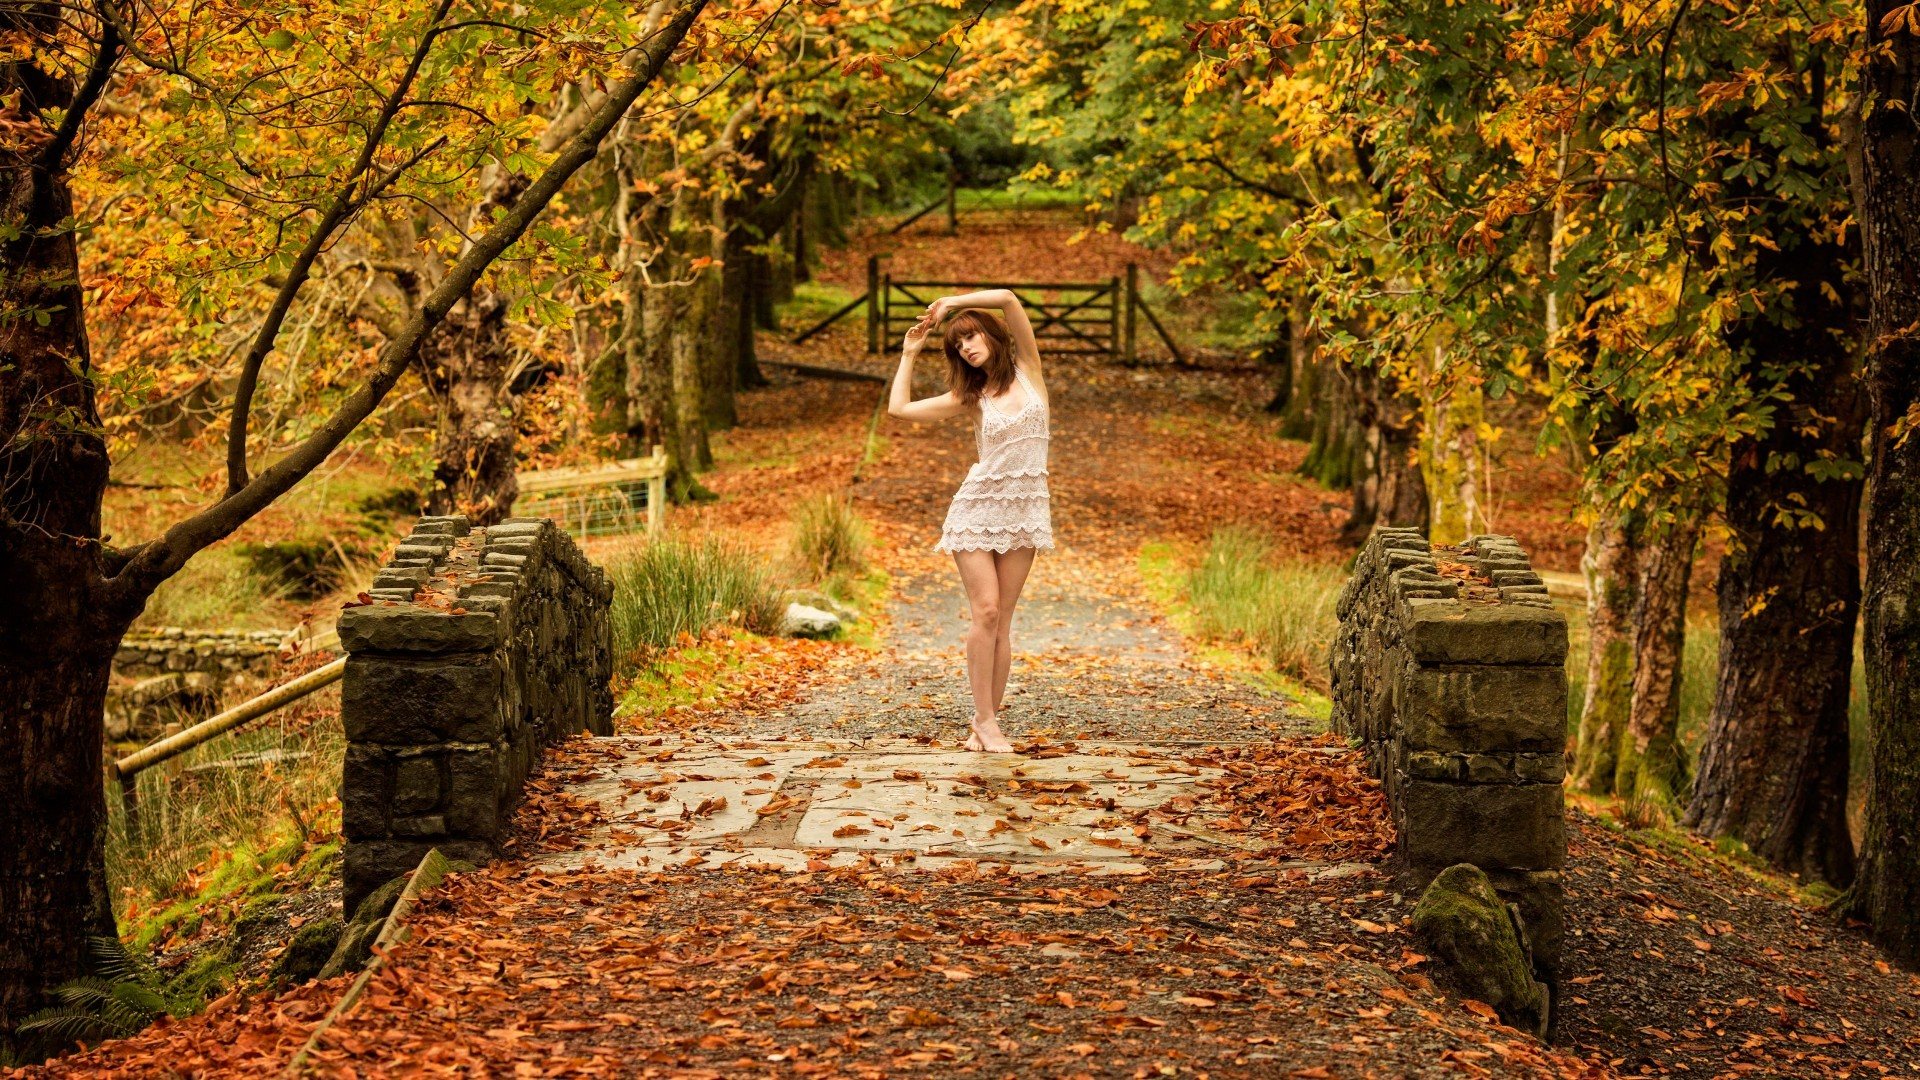 4k Central Park In The Fall Wallpaper Arms Up Barefoot Fall Gates Women Outdoors Bridge Trees